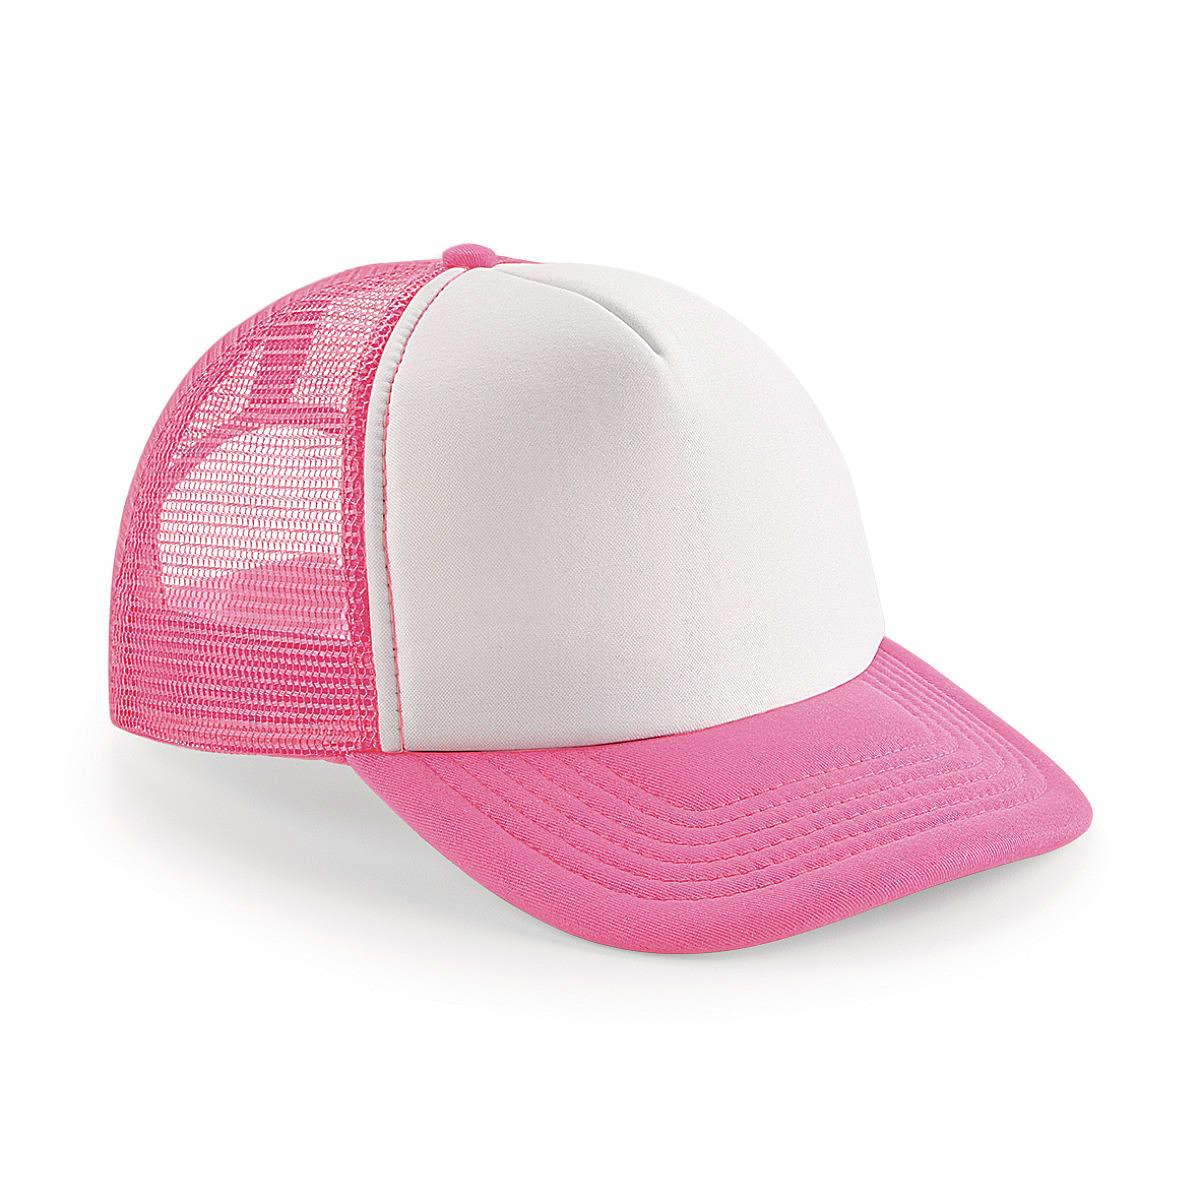 Beechfield Vintage Snapback Trucker Cap in Fluorescent Pink / White (Product Code: B645)